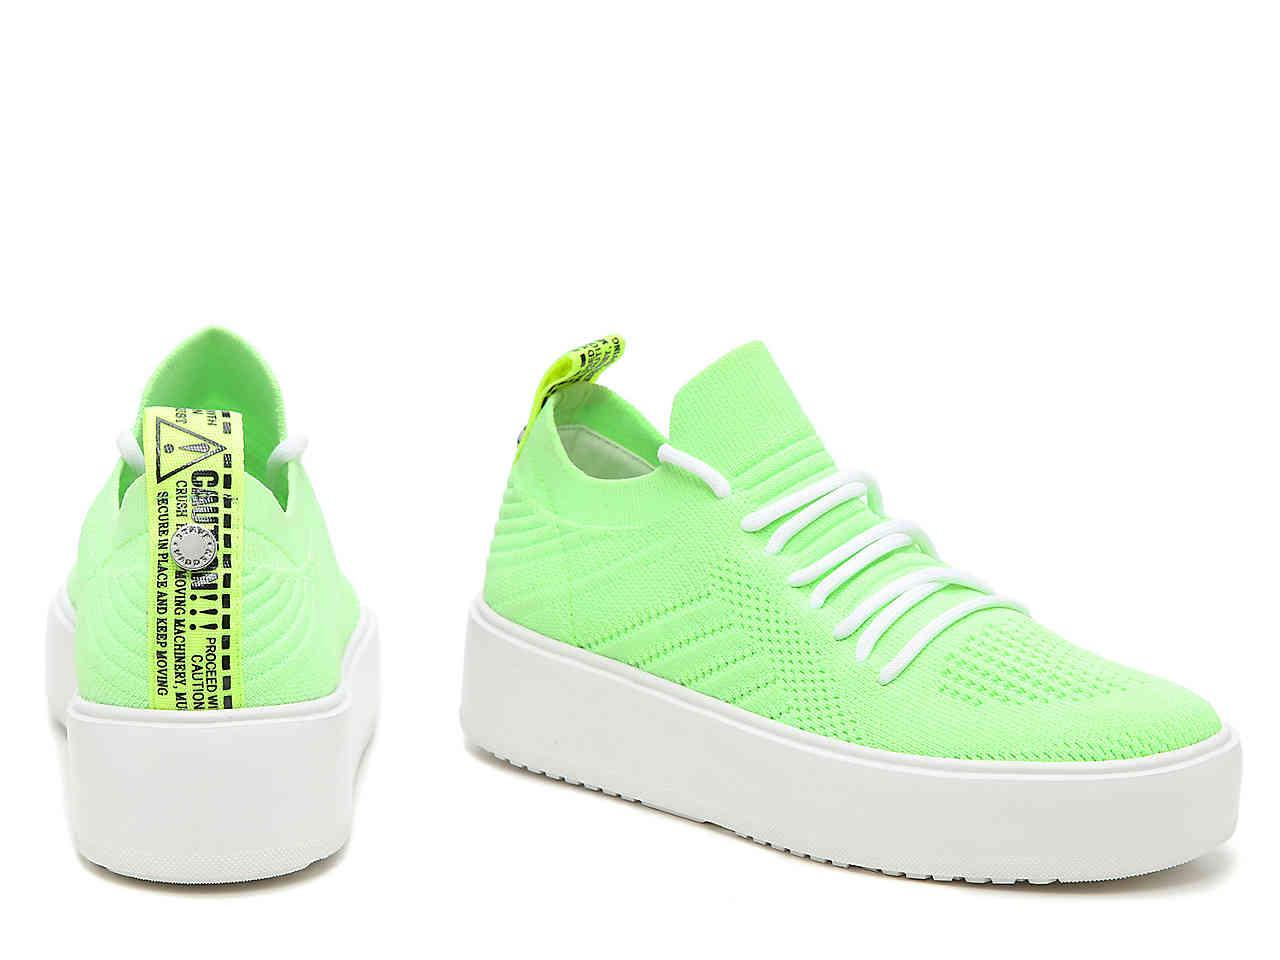 Brixie Platform Sneaker in Lime Green